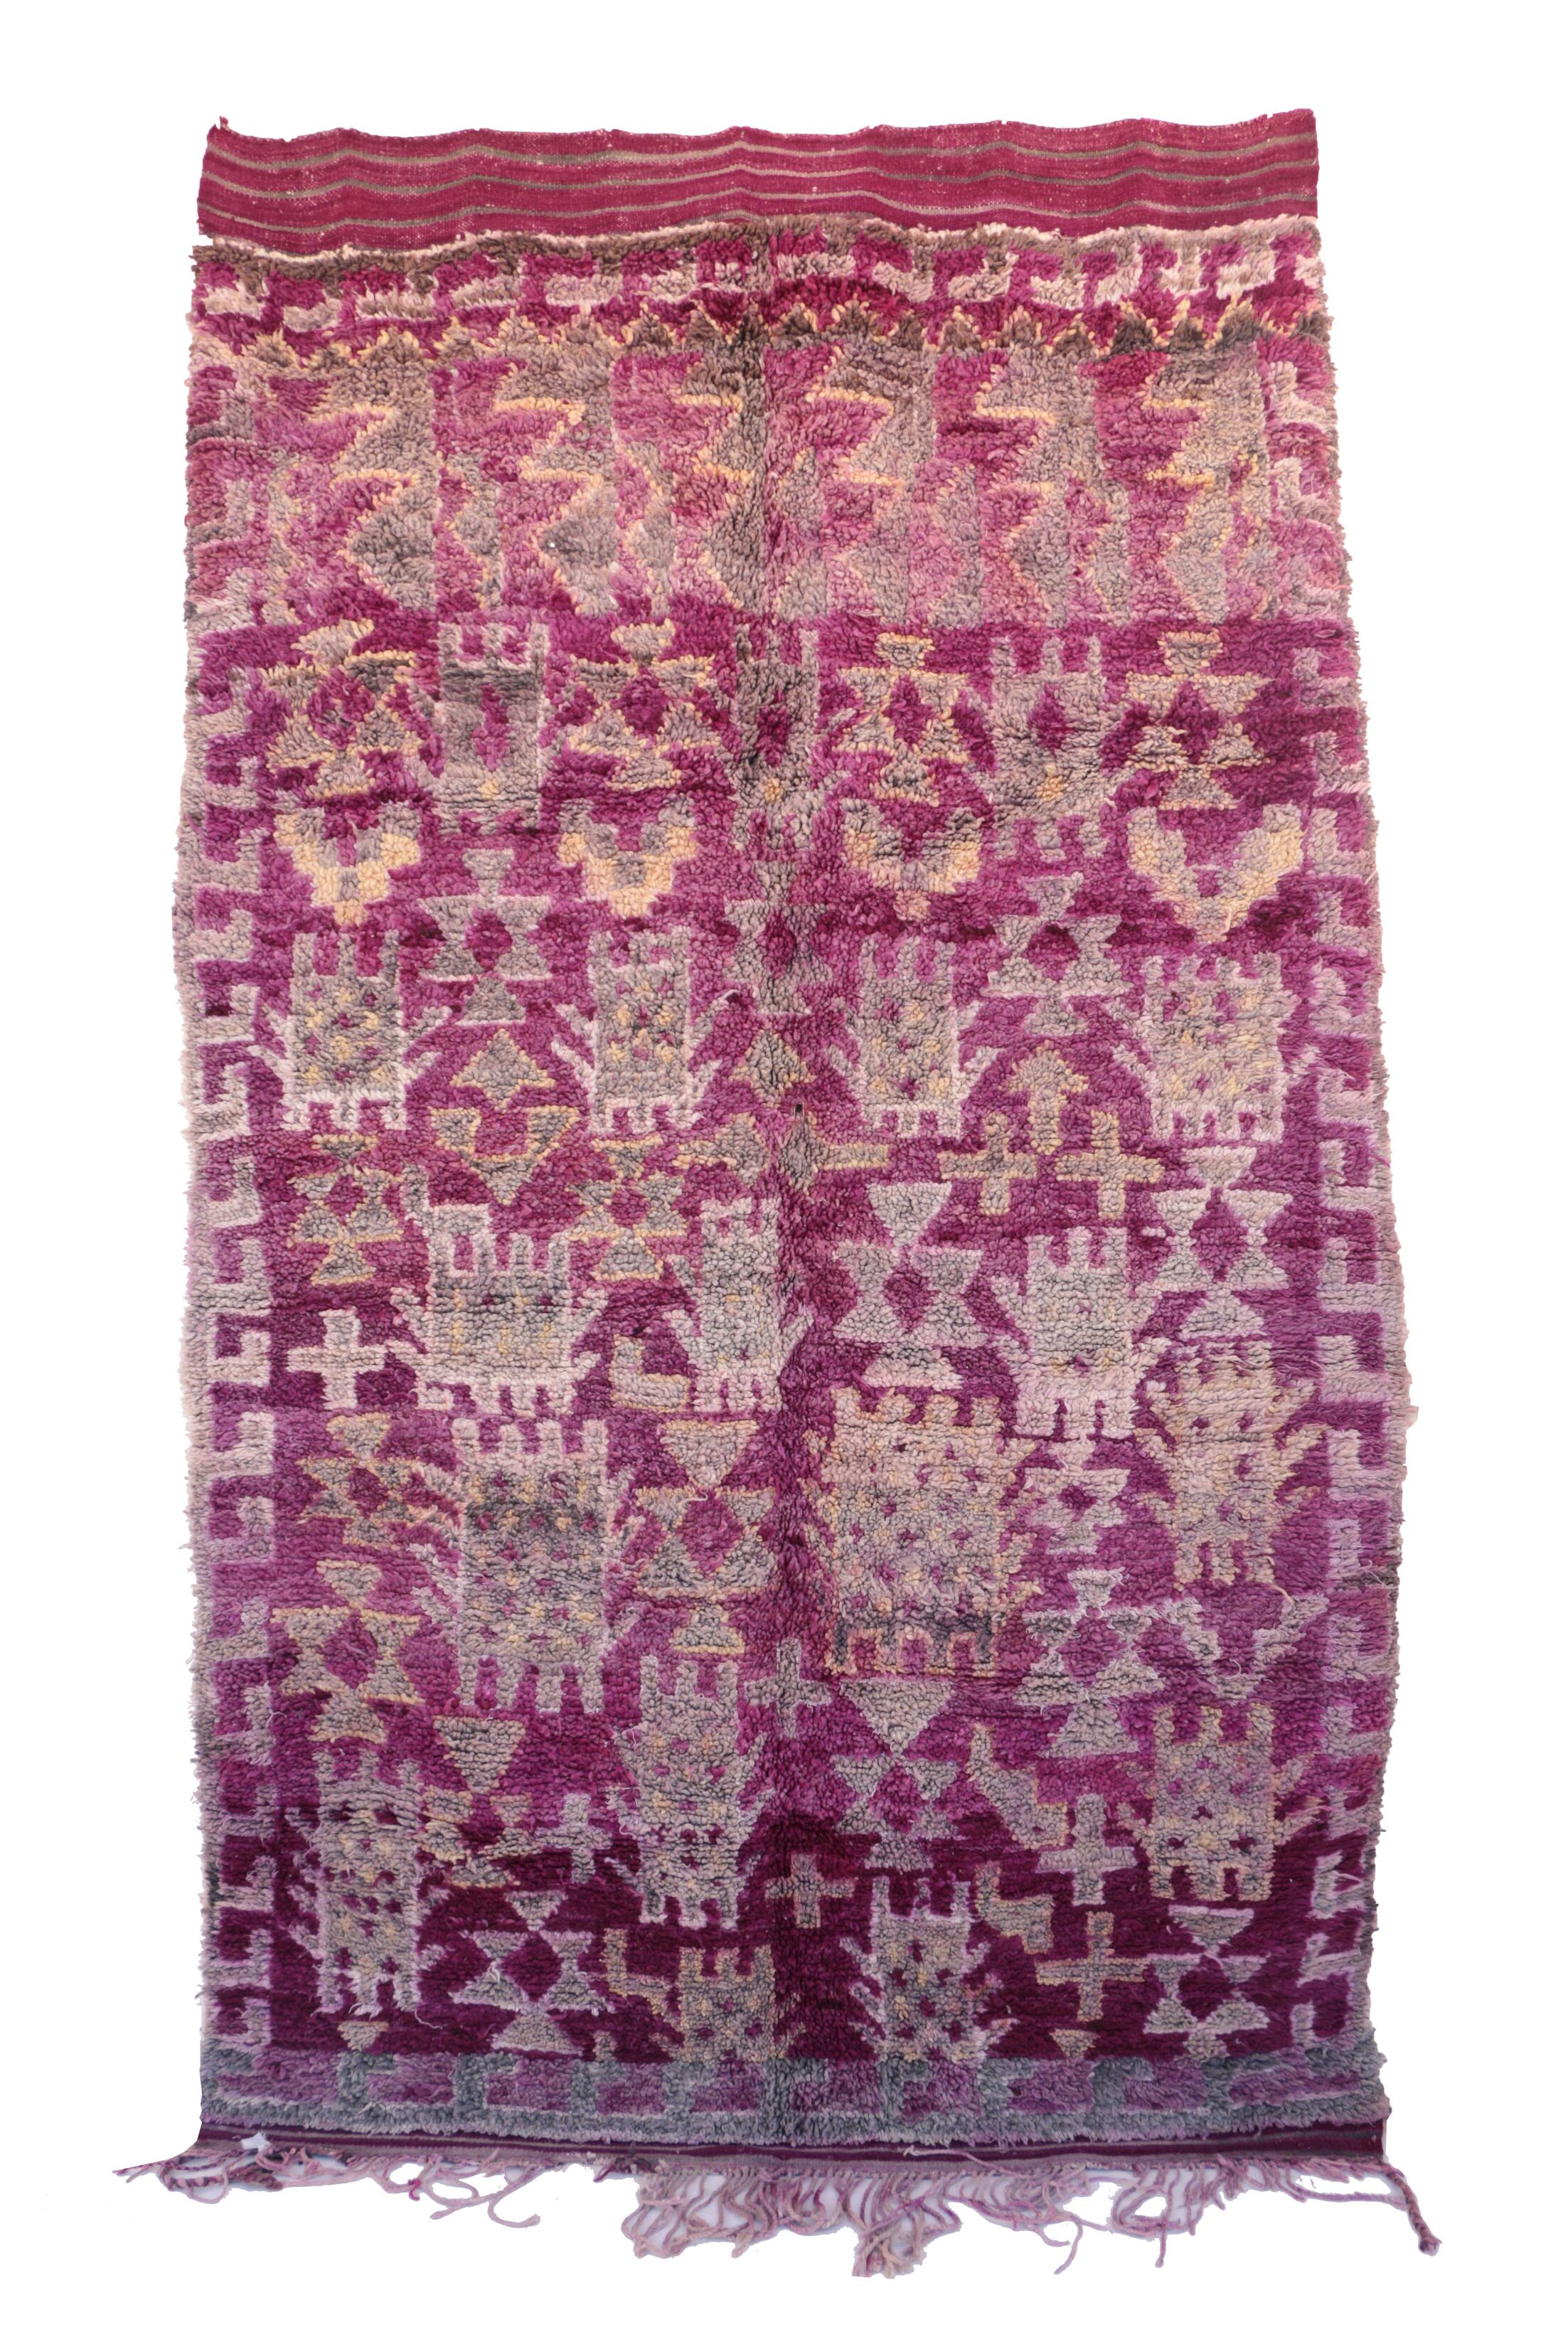 One-of-a-Kind Beni M'Guild Moroccan Hand-Knotted Wool Pink Area Rug